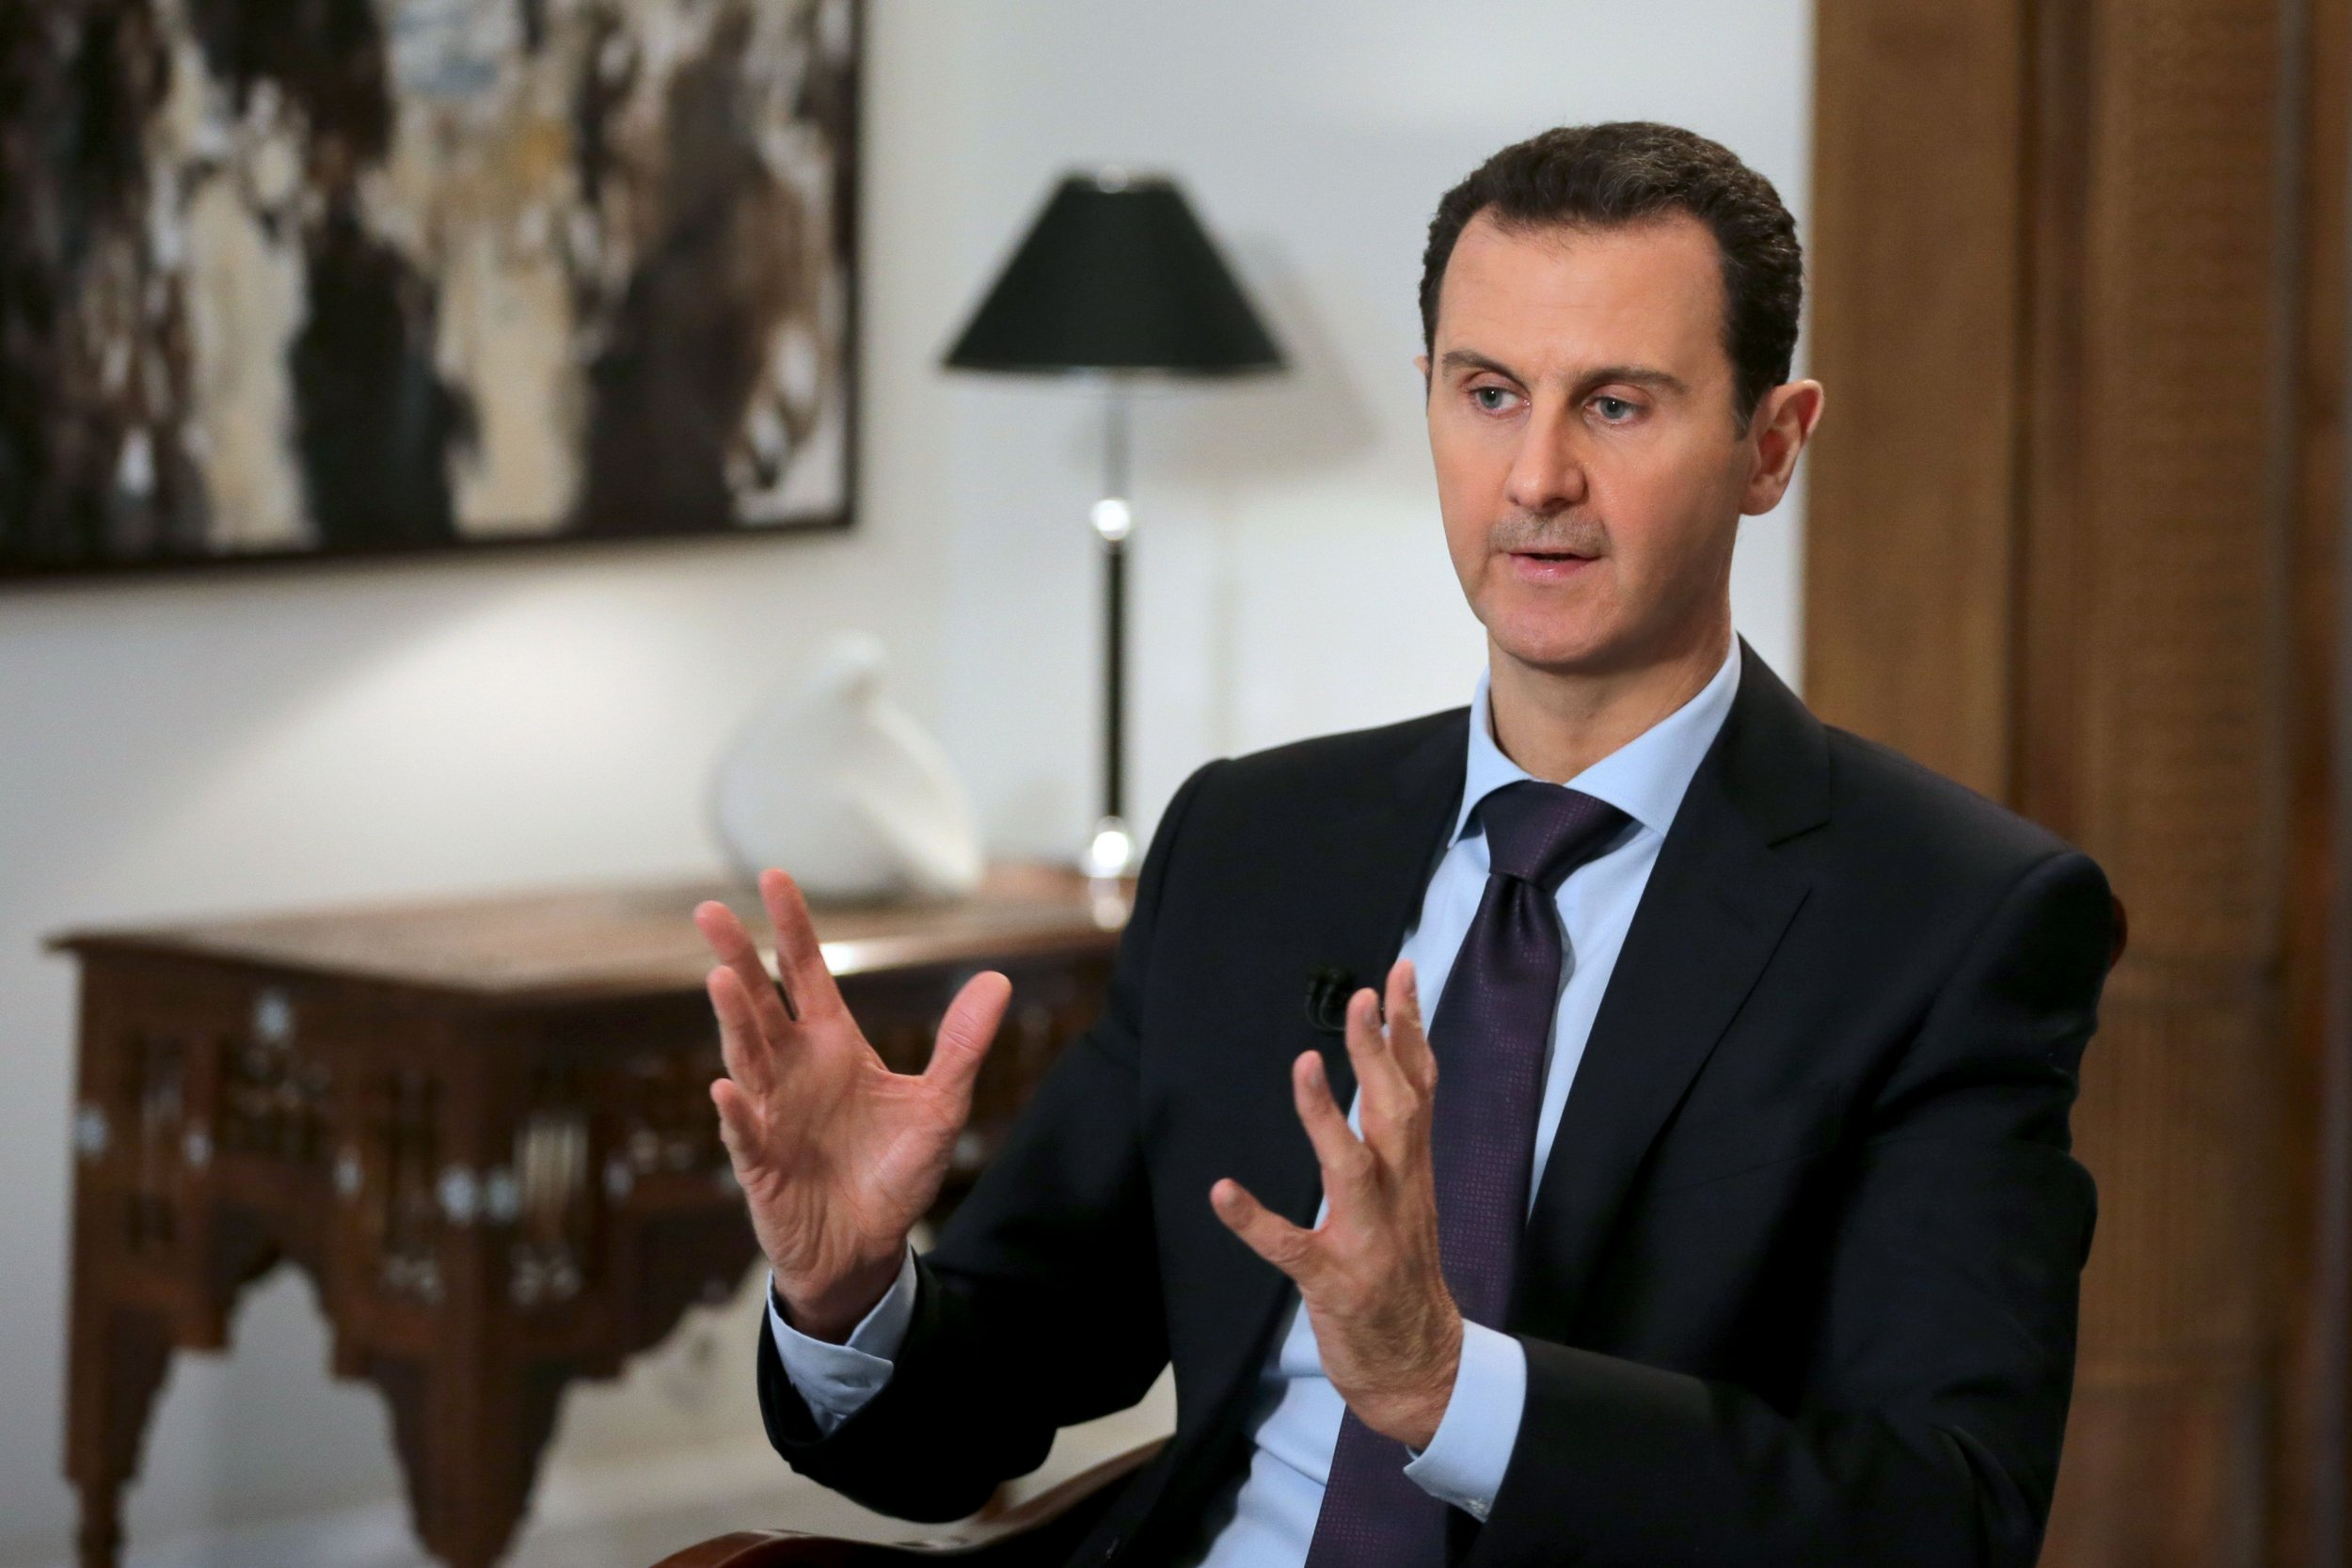 Assad Syria Middle East